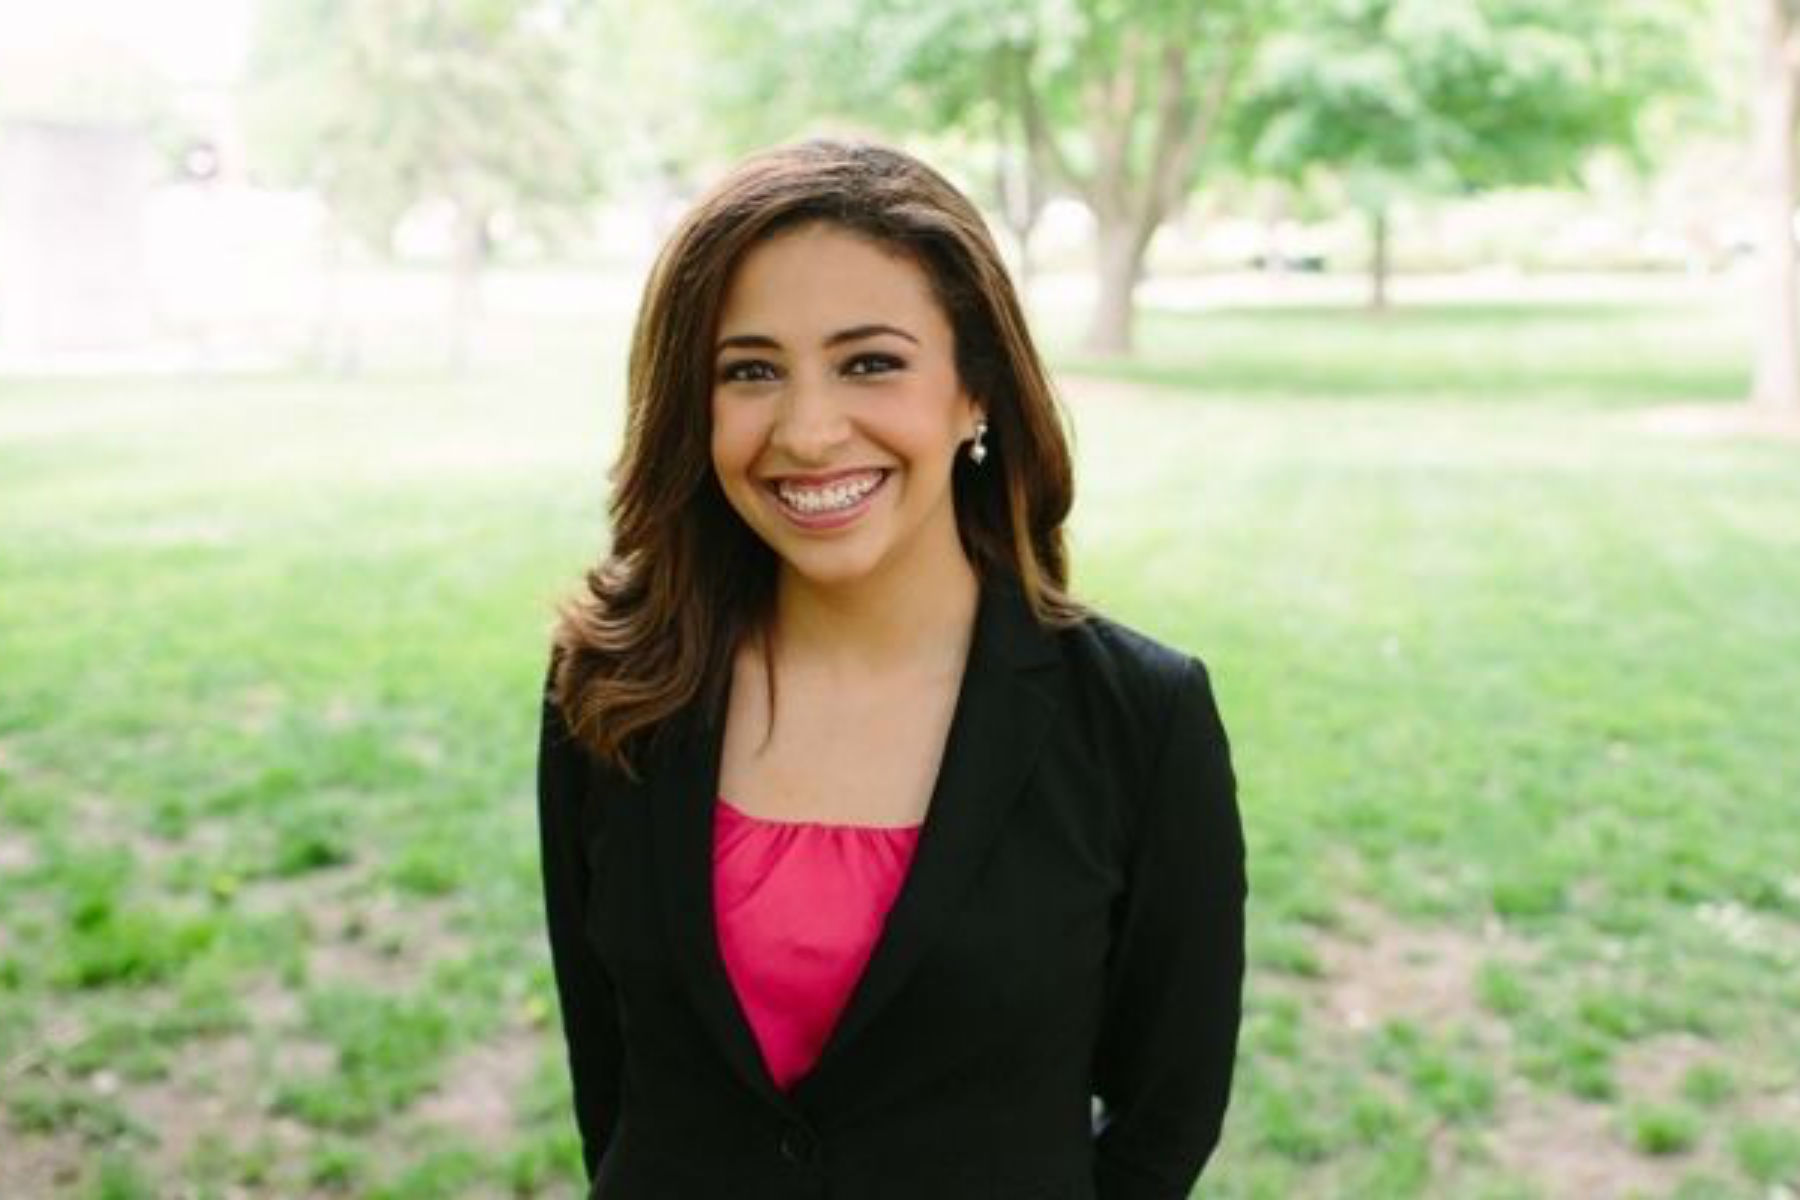 Illinois Attorney General Candidate Erika Harold